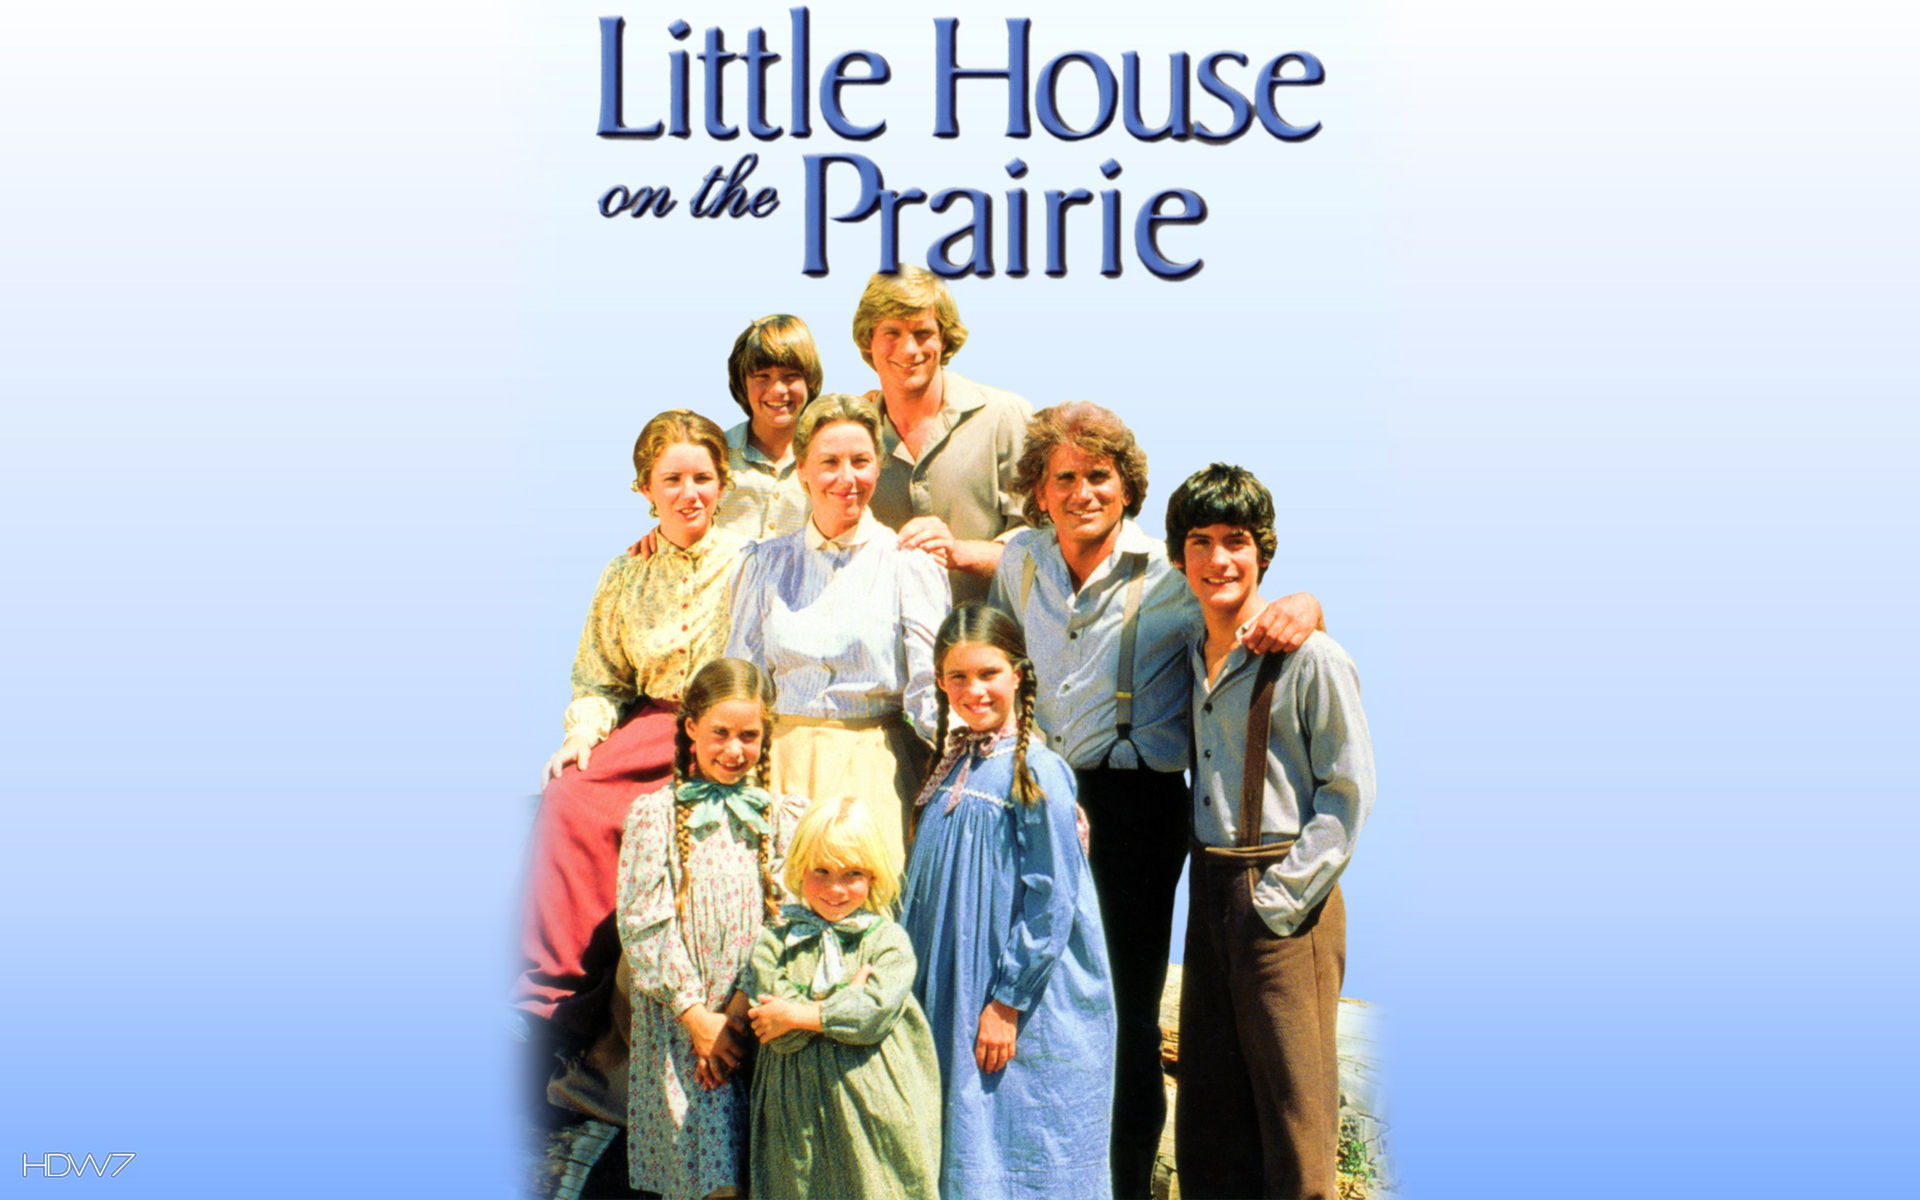 Little house on the prairie tv series show hd wallpaper - House of tv show ...